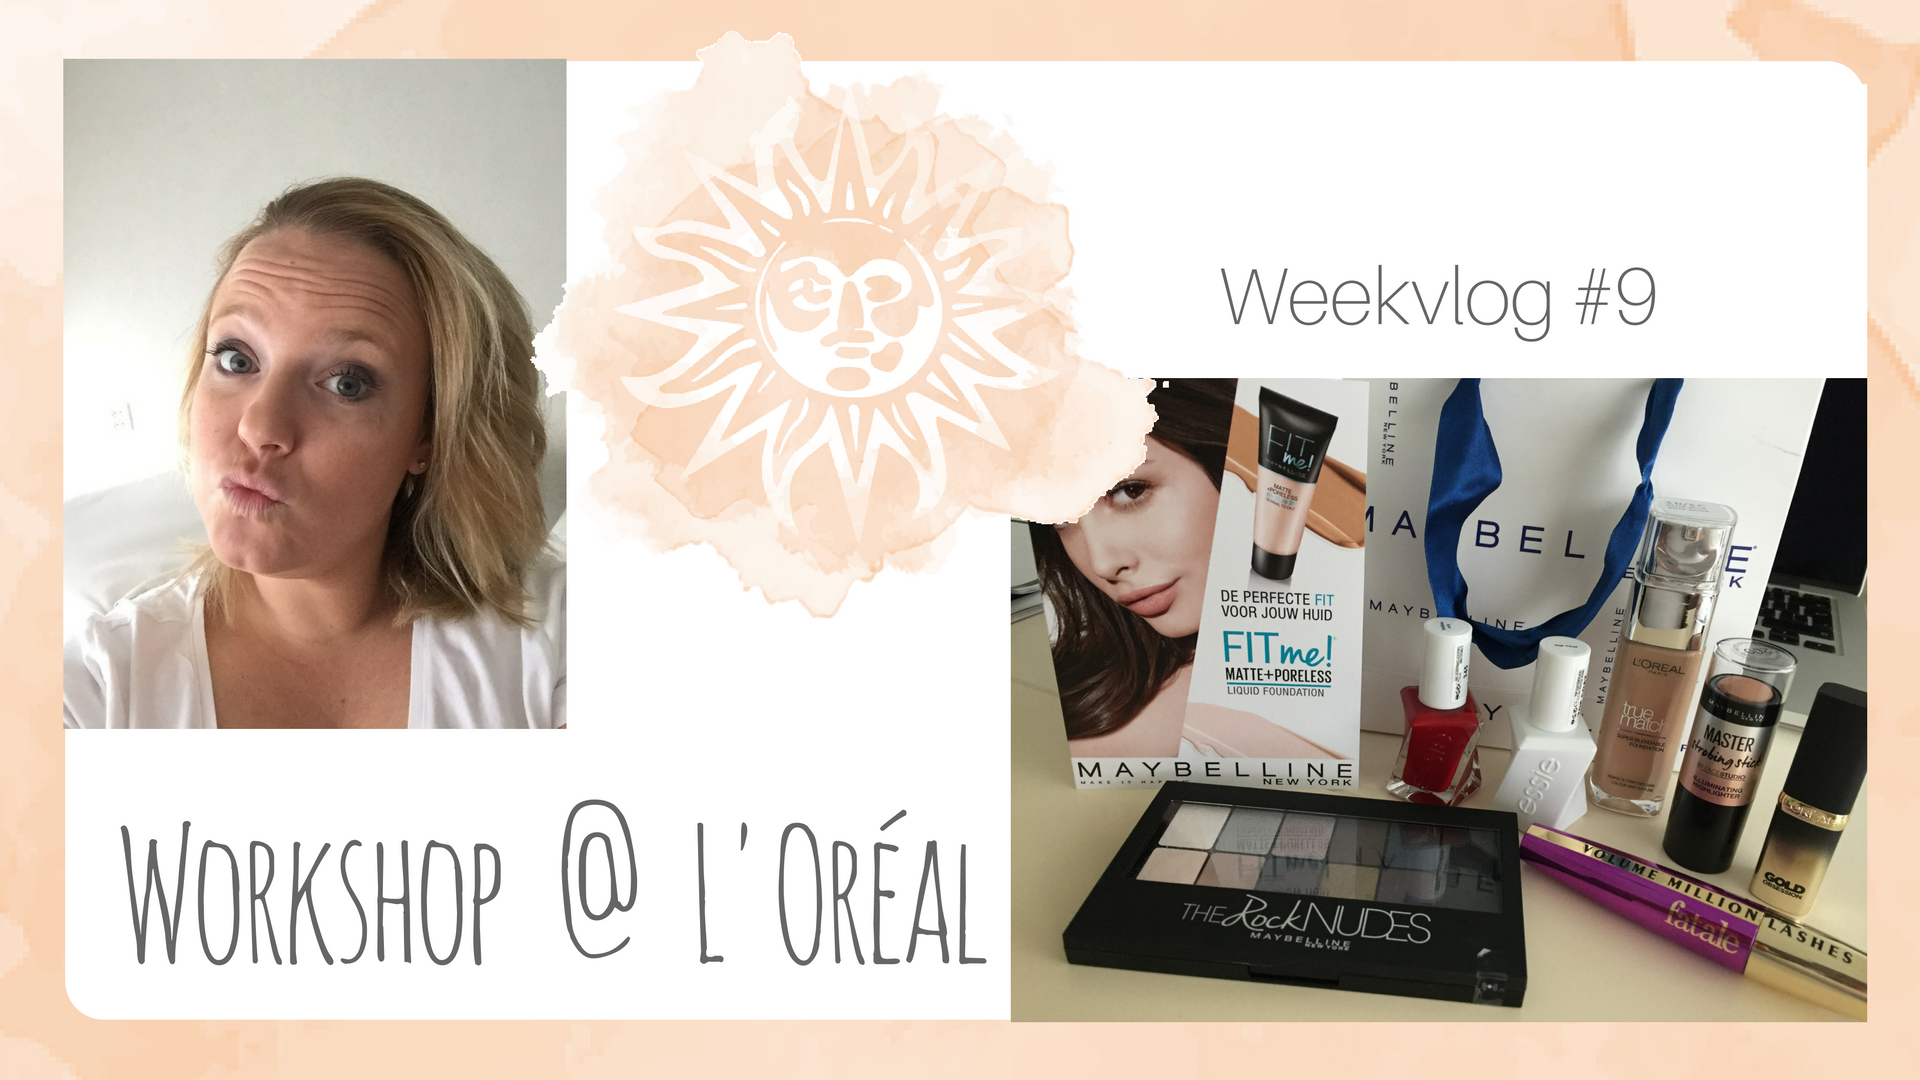 Weekvlog #9 Workshop @ L'Oréal